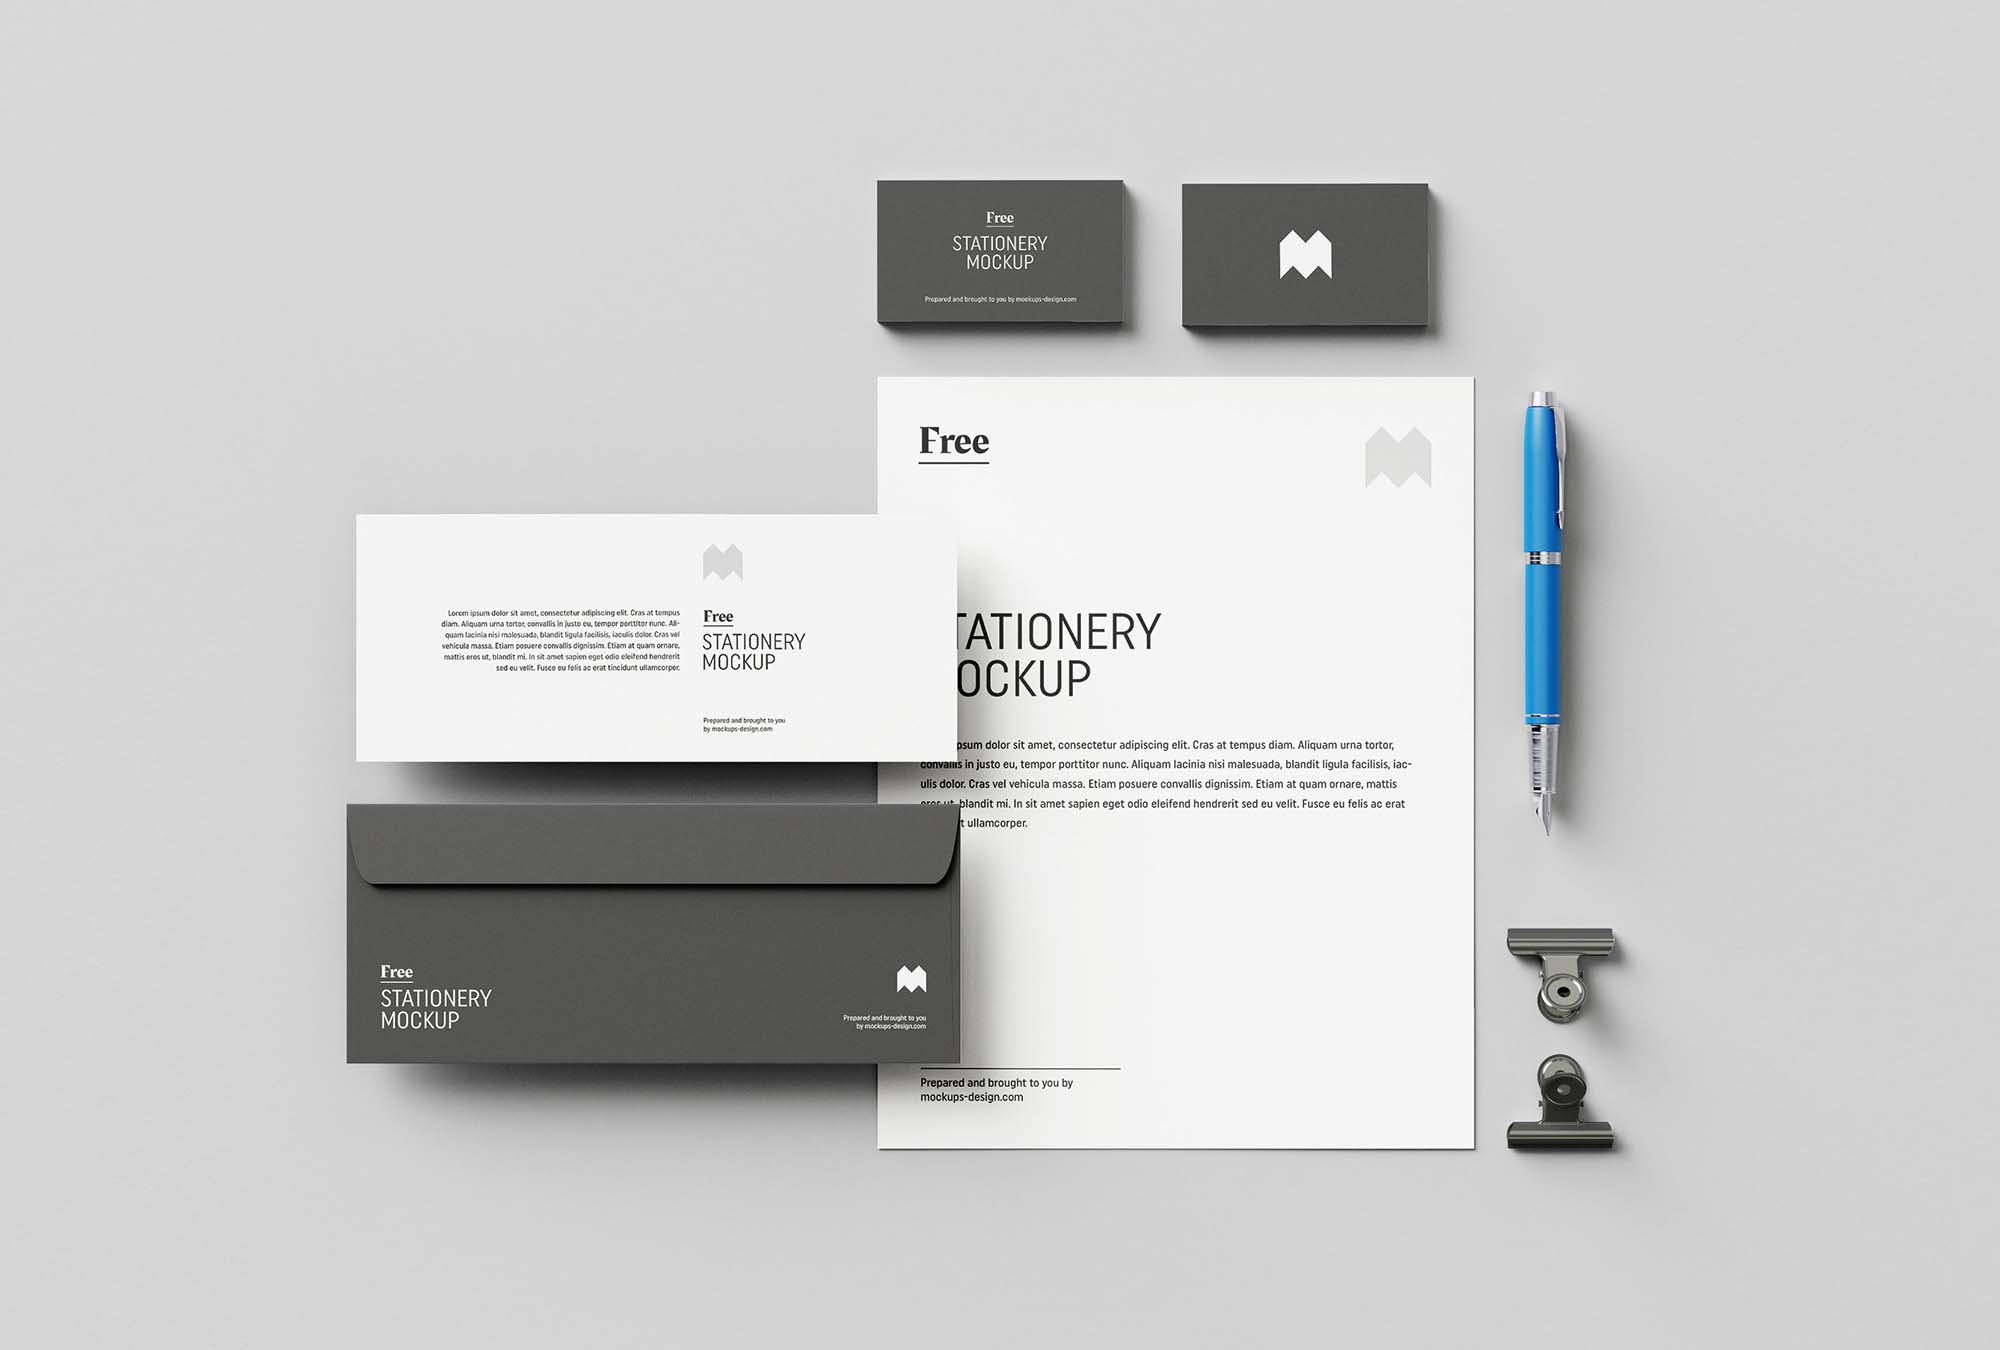 US Stationary Mockup 1